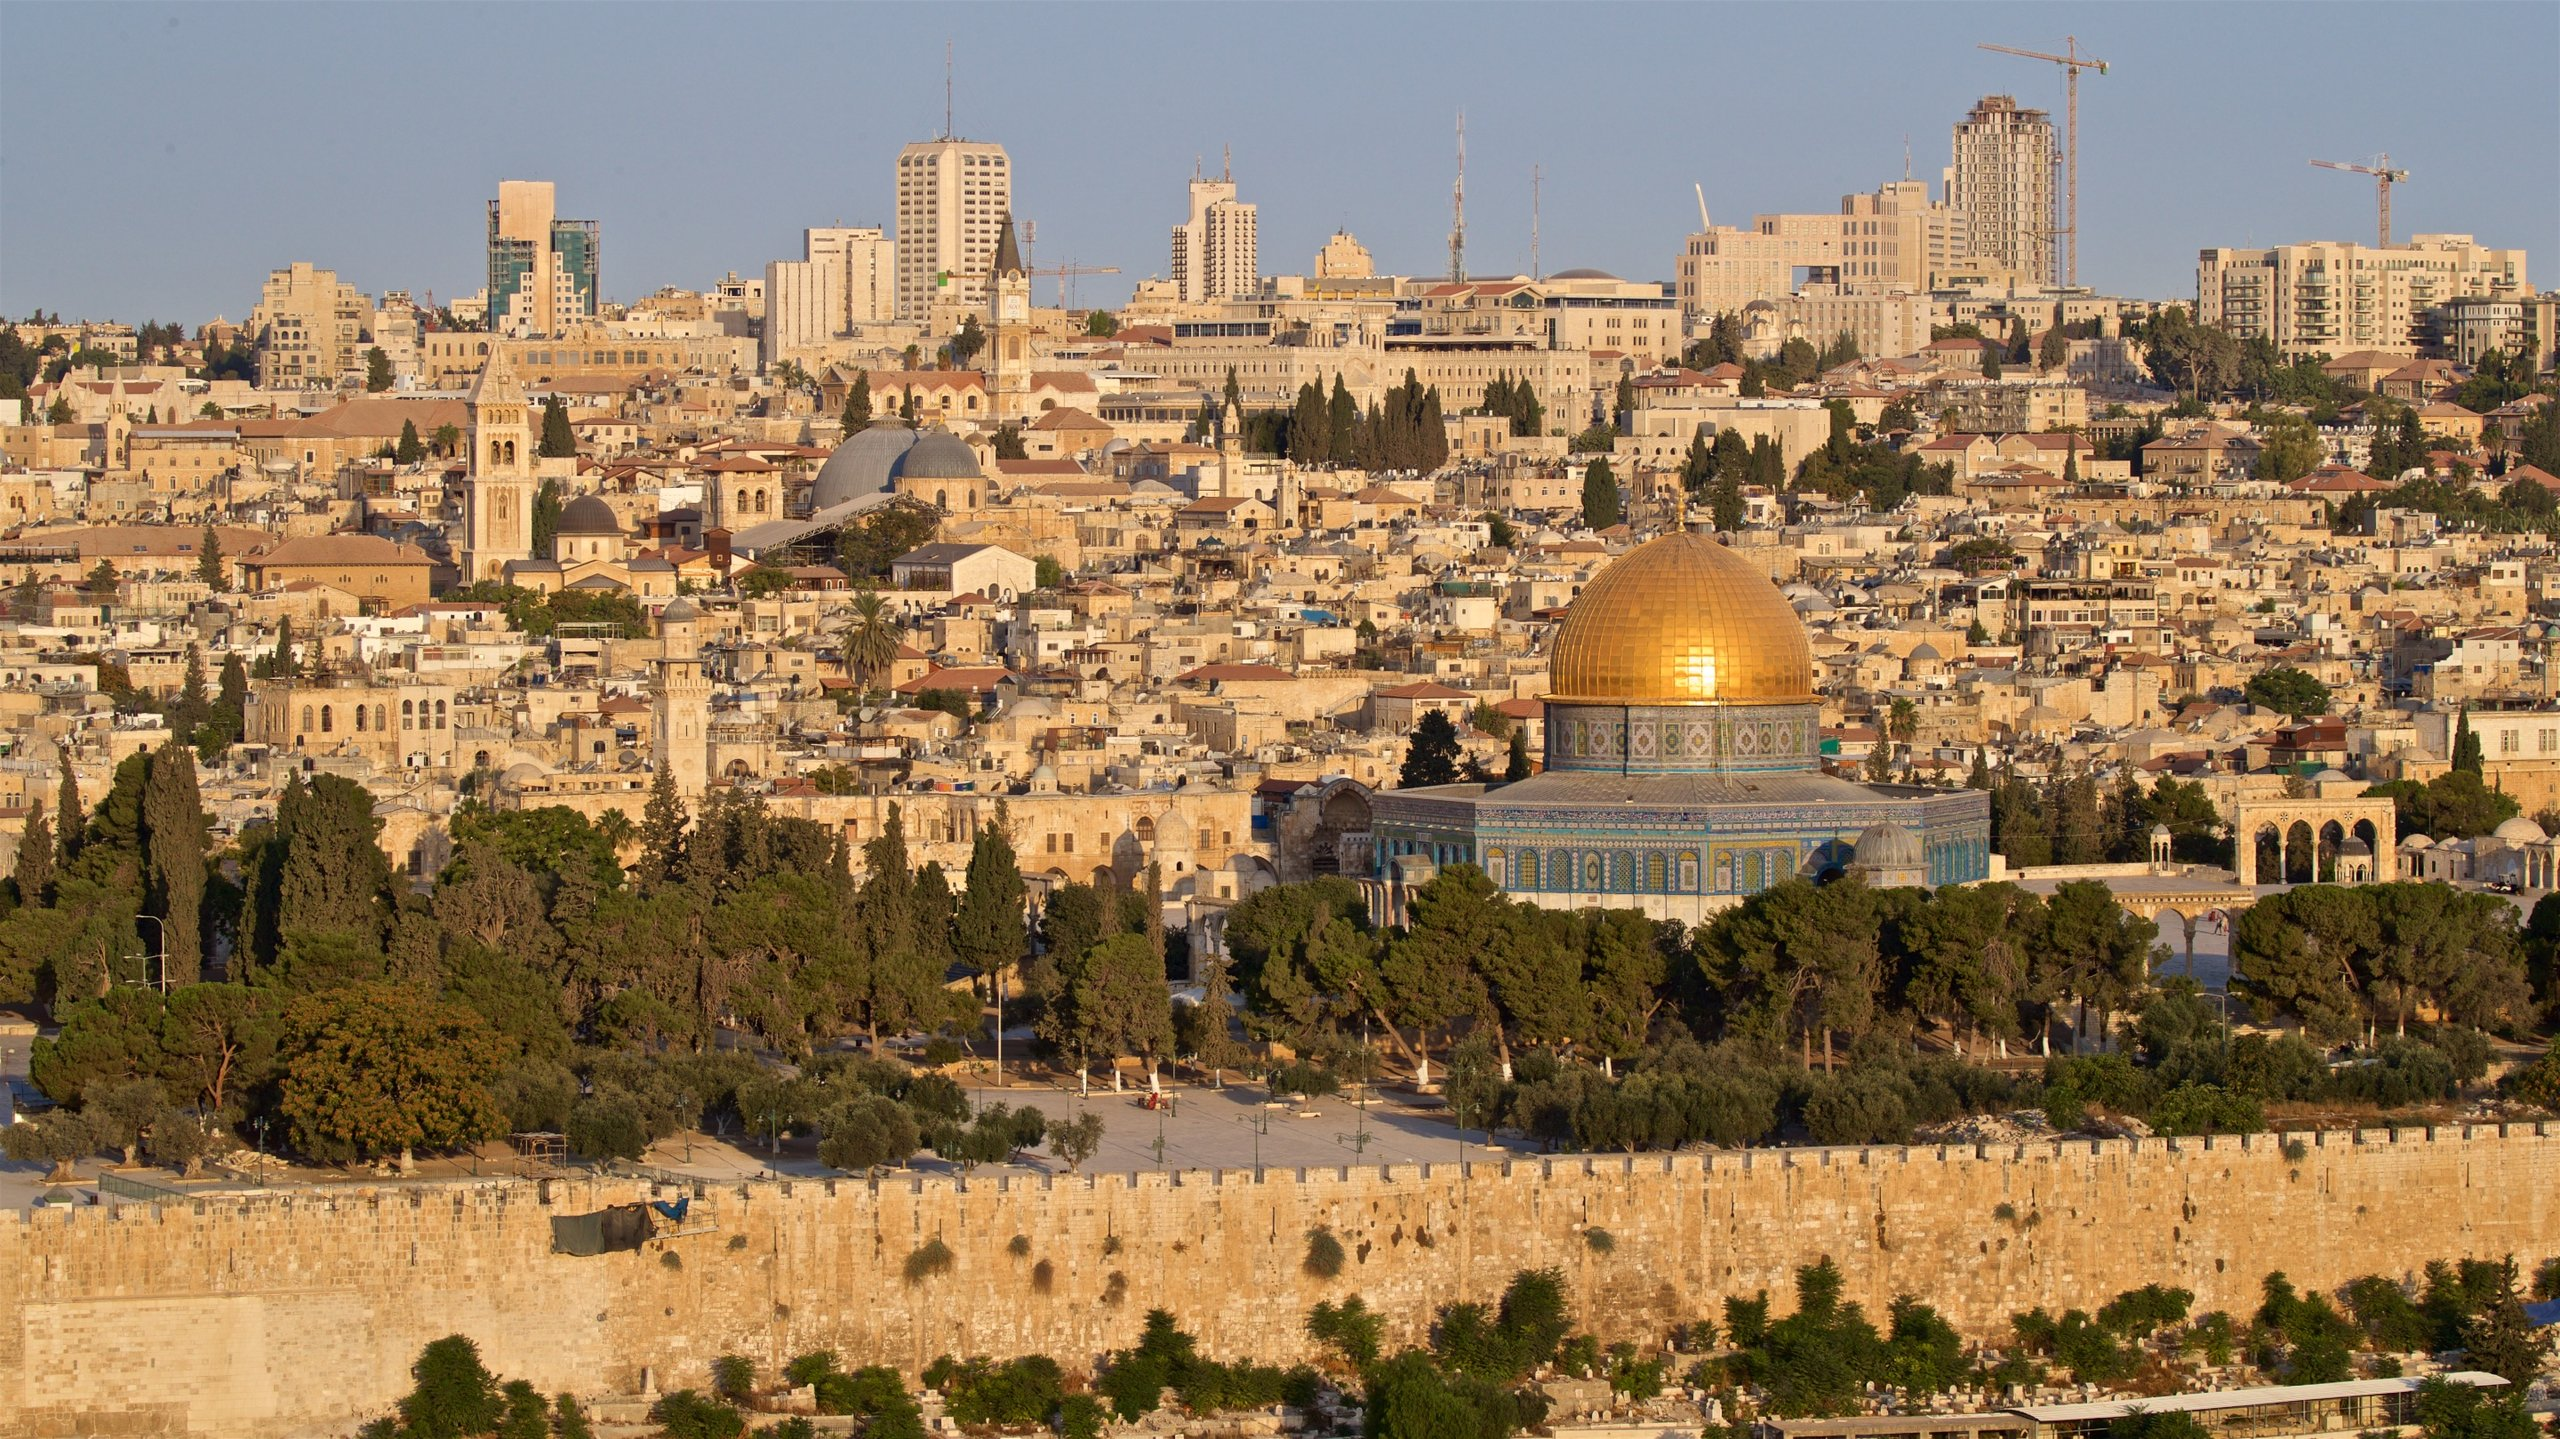 Visit this holy place to learn about its significance for Muslim, Jewish and Christian people and to enjoy panoramic views of Jerusalem.